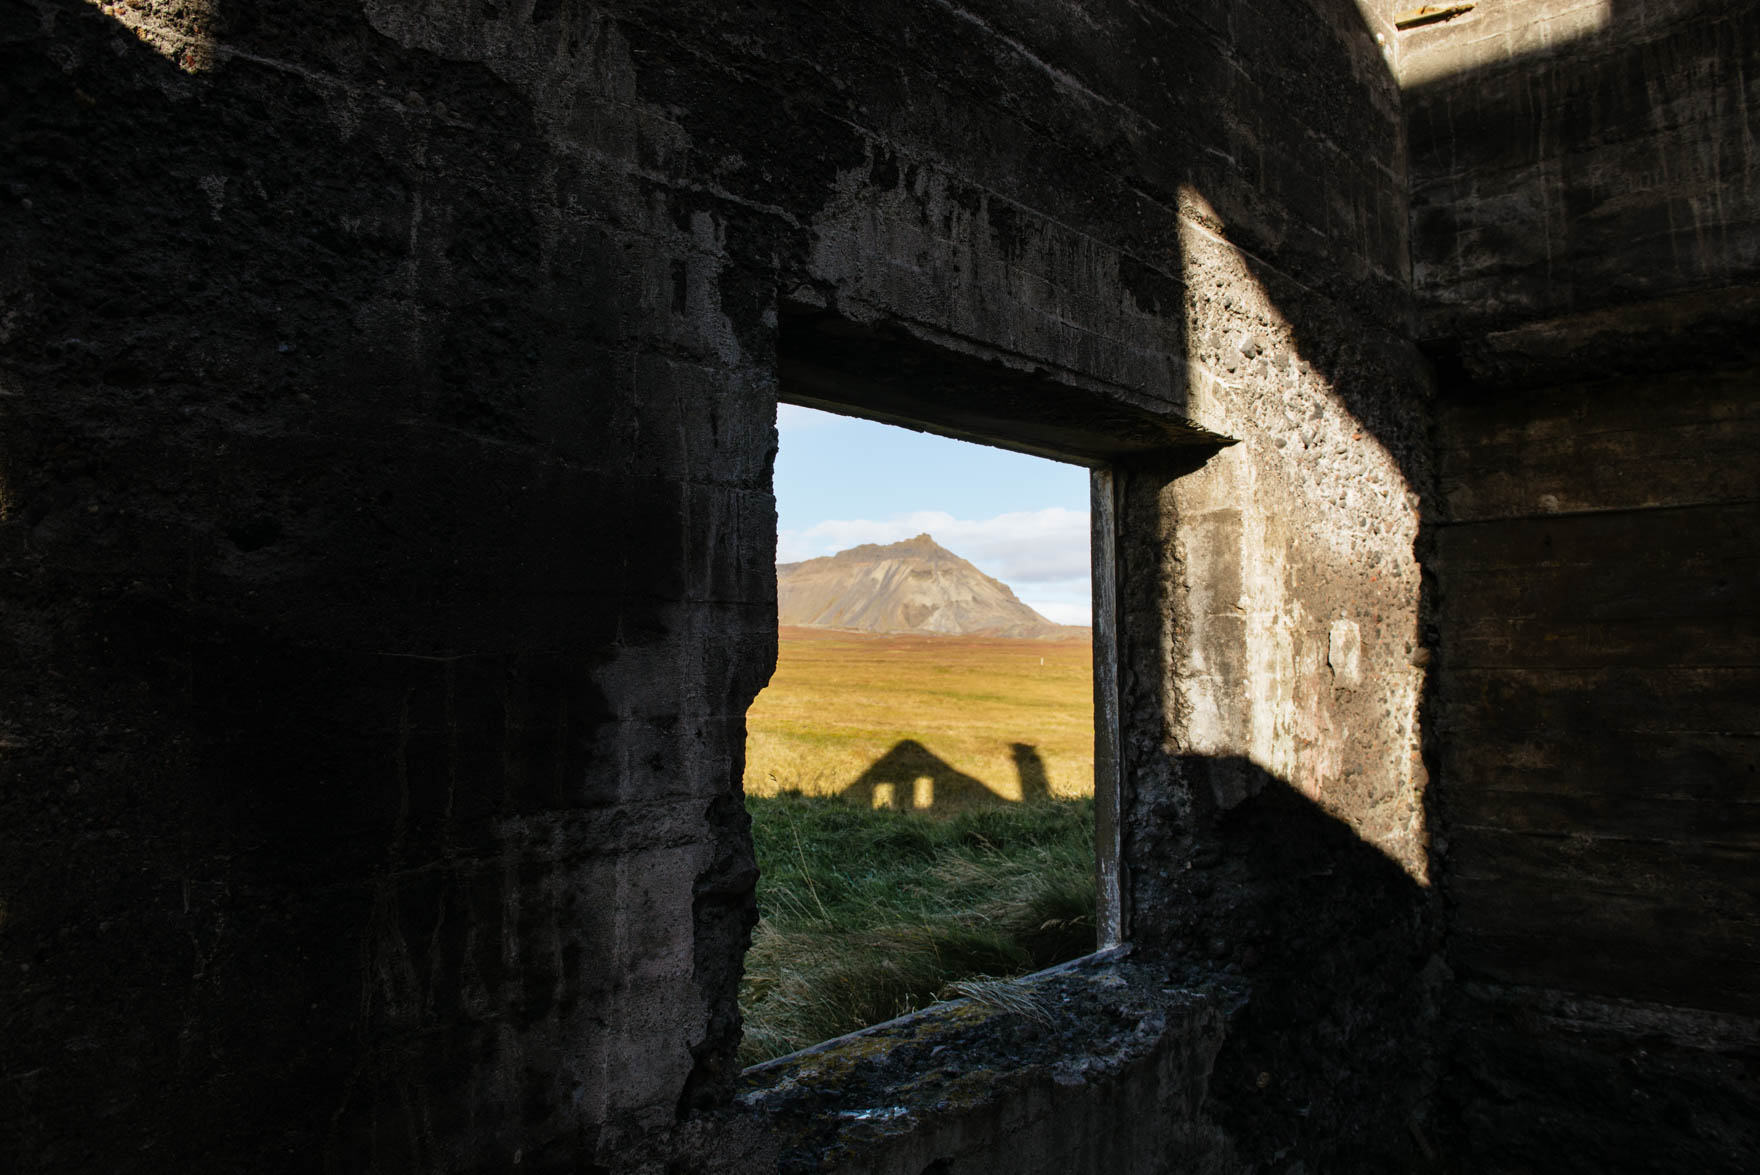 Shadow of house casted onto mountain landscape in Iceland